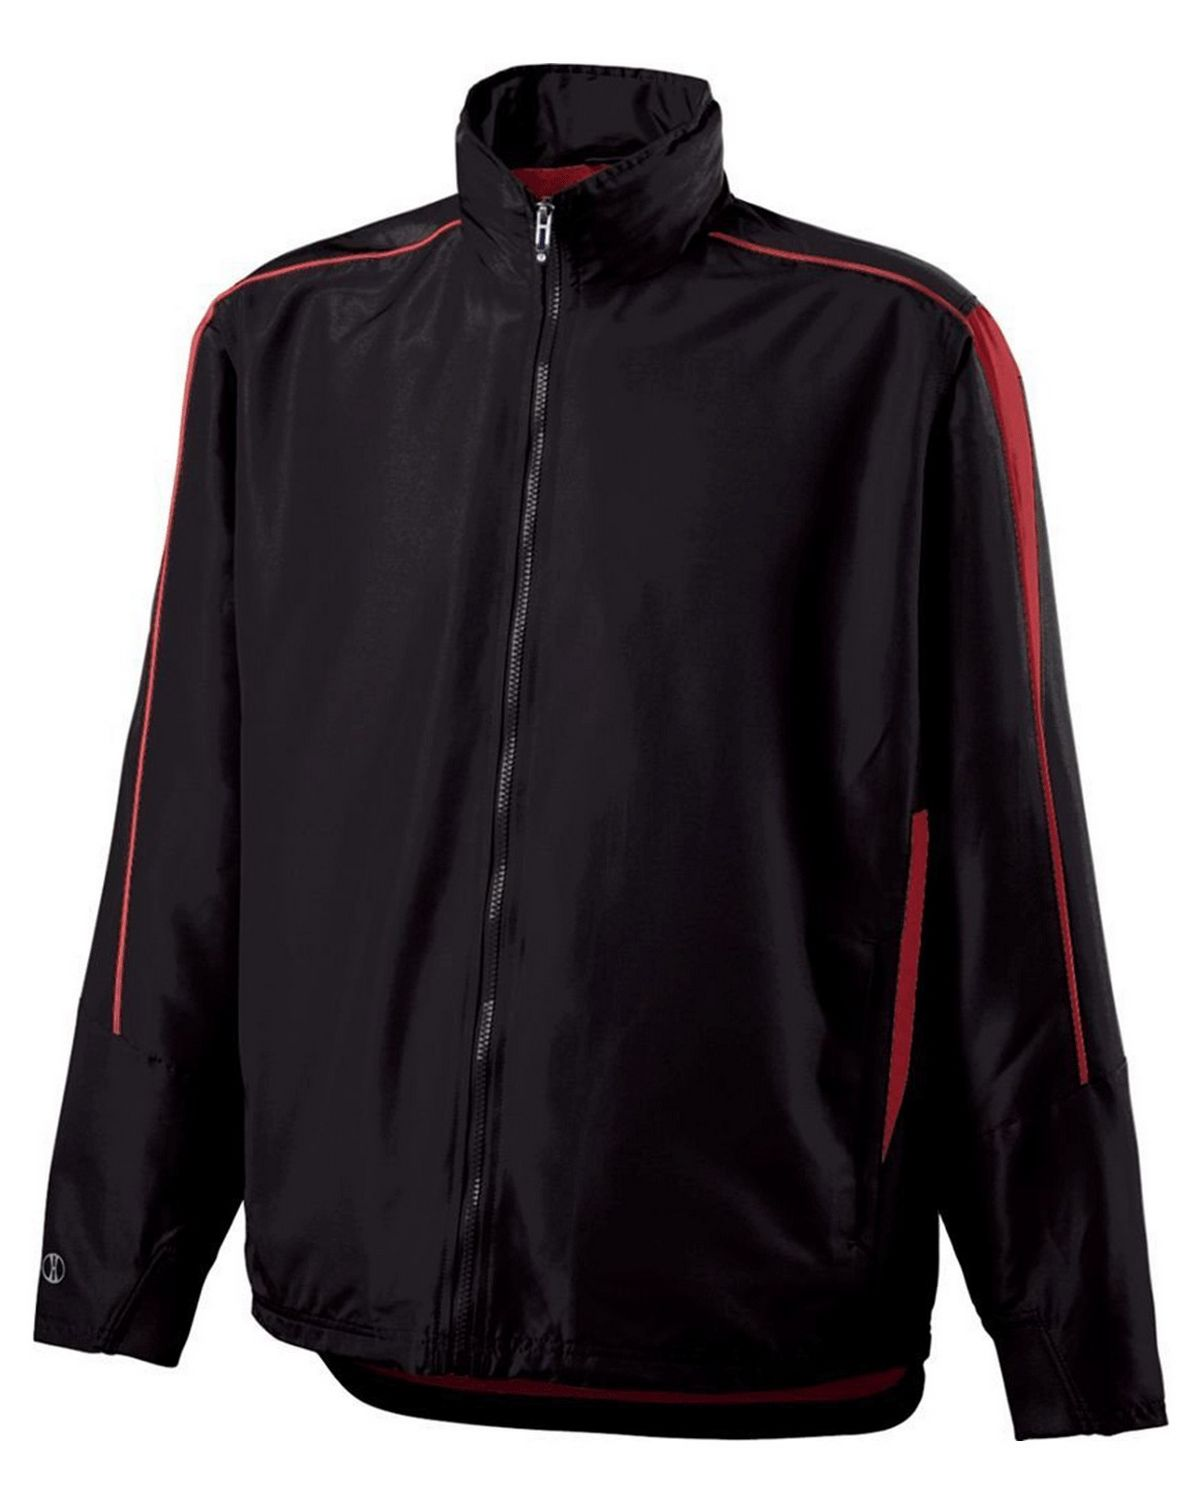 Holloway 229262 Youth Polyester Full Zip Jacket - Black/Orange - S 229262